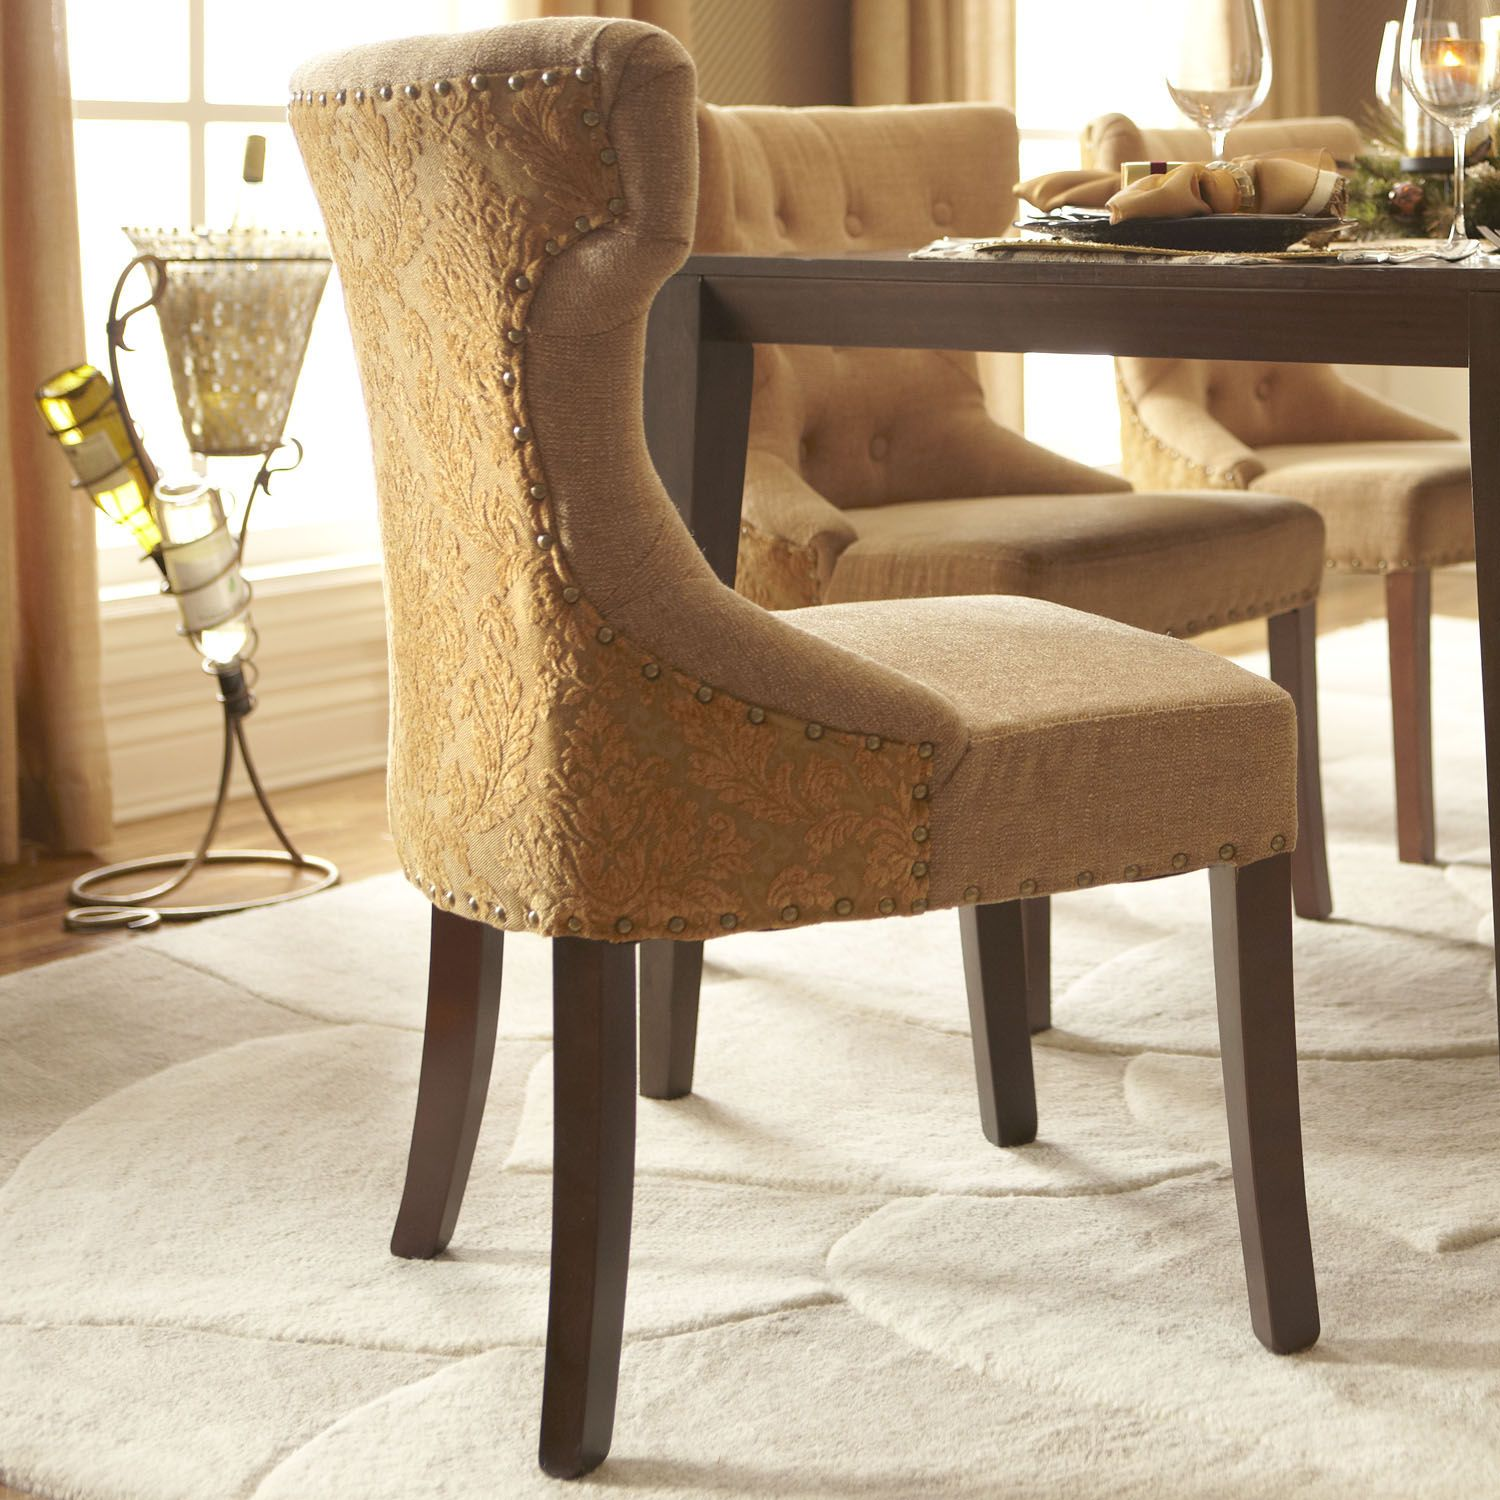 Hourgl Dining Chair Gold Damask Pier 1 Imports This Could Be A Nice Addition To Your Study Use At The Desk Beautiful Pattern